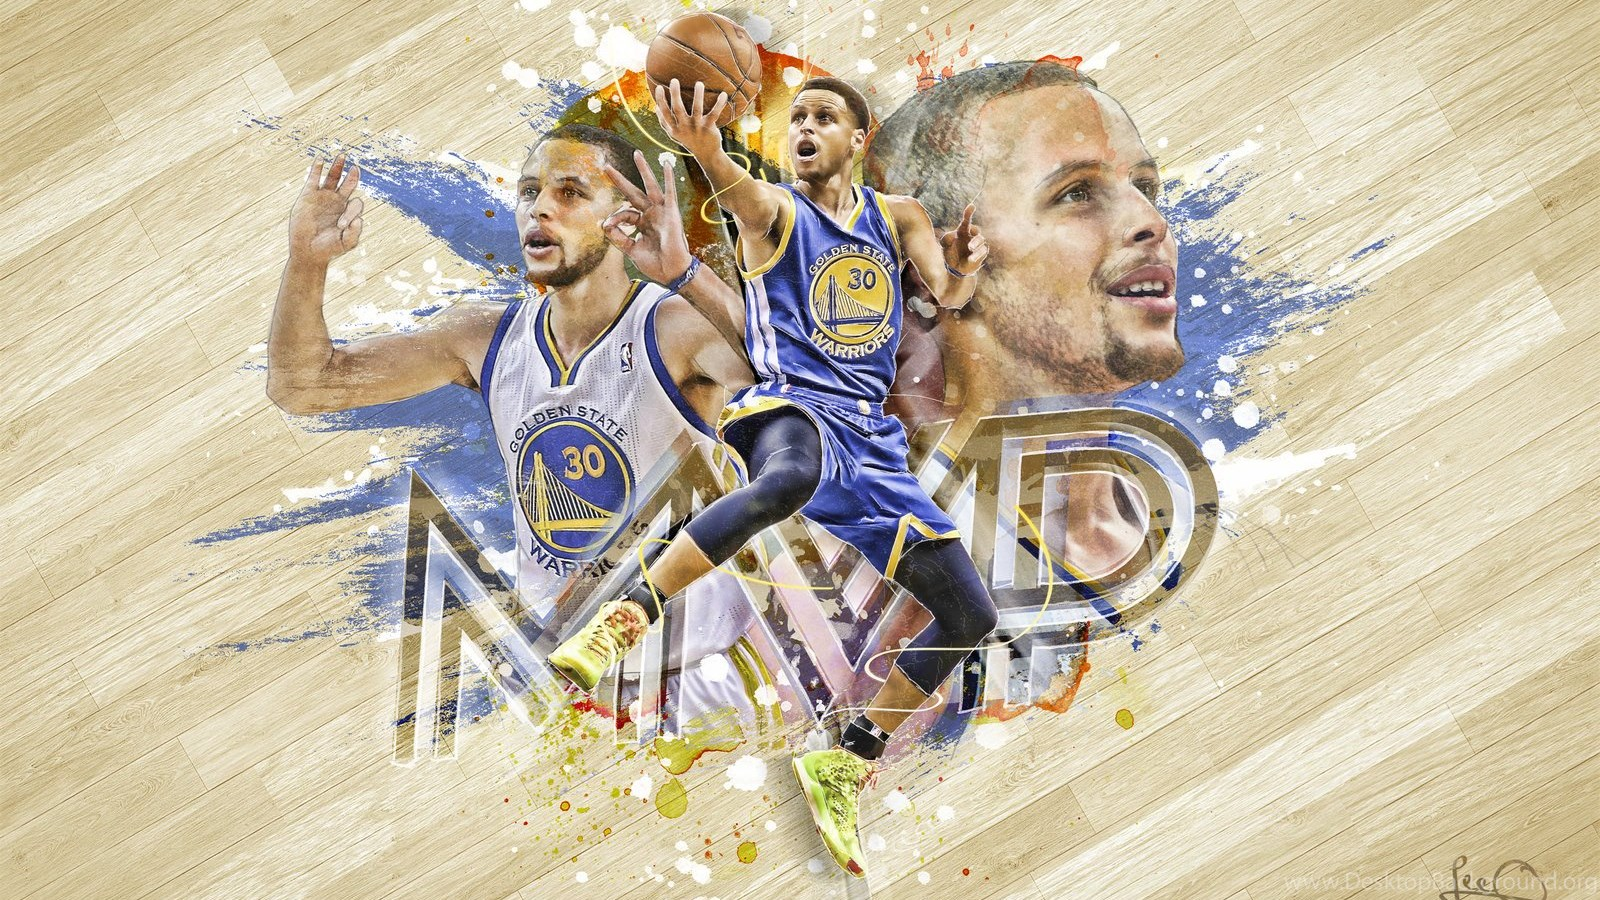 Top Wallpaper Mac Stephen Curry - 845629_golden-state-warriors-stephen-curry-wallpapers-for-iphone_1600x1000_h  Image_791521.jpg